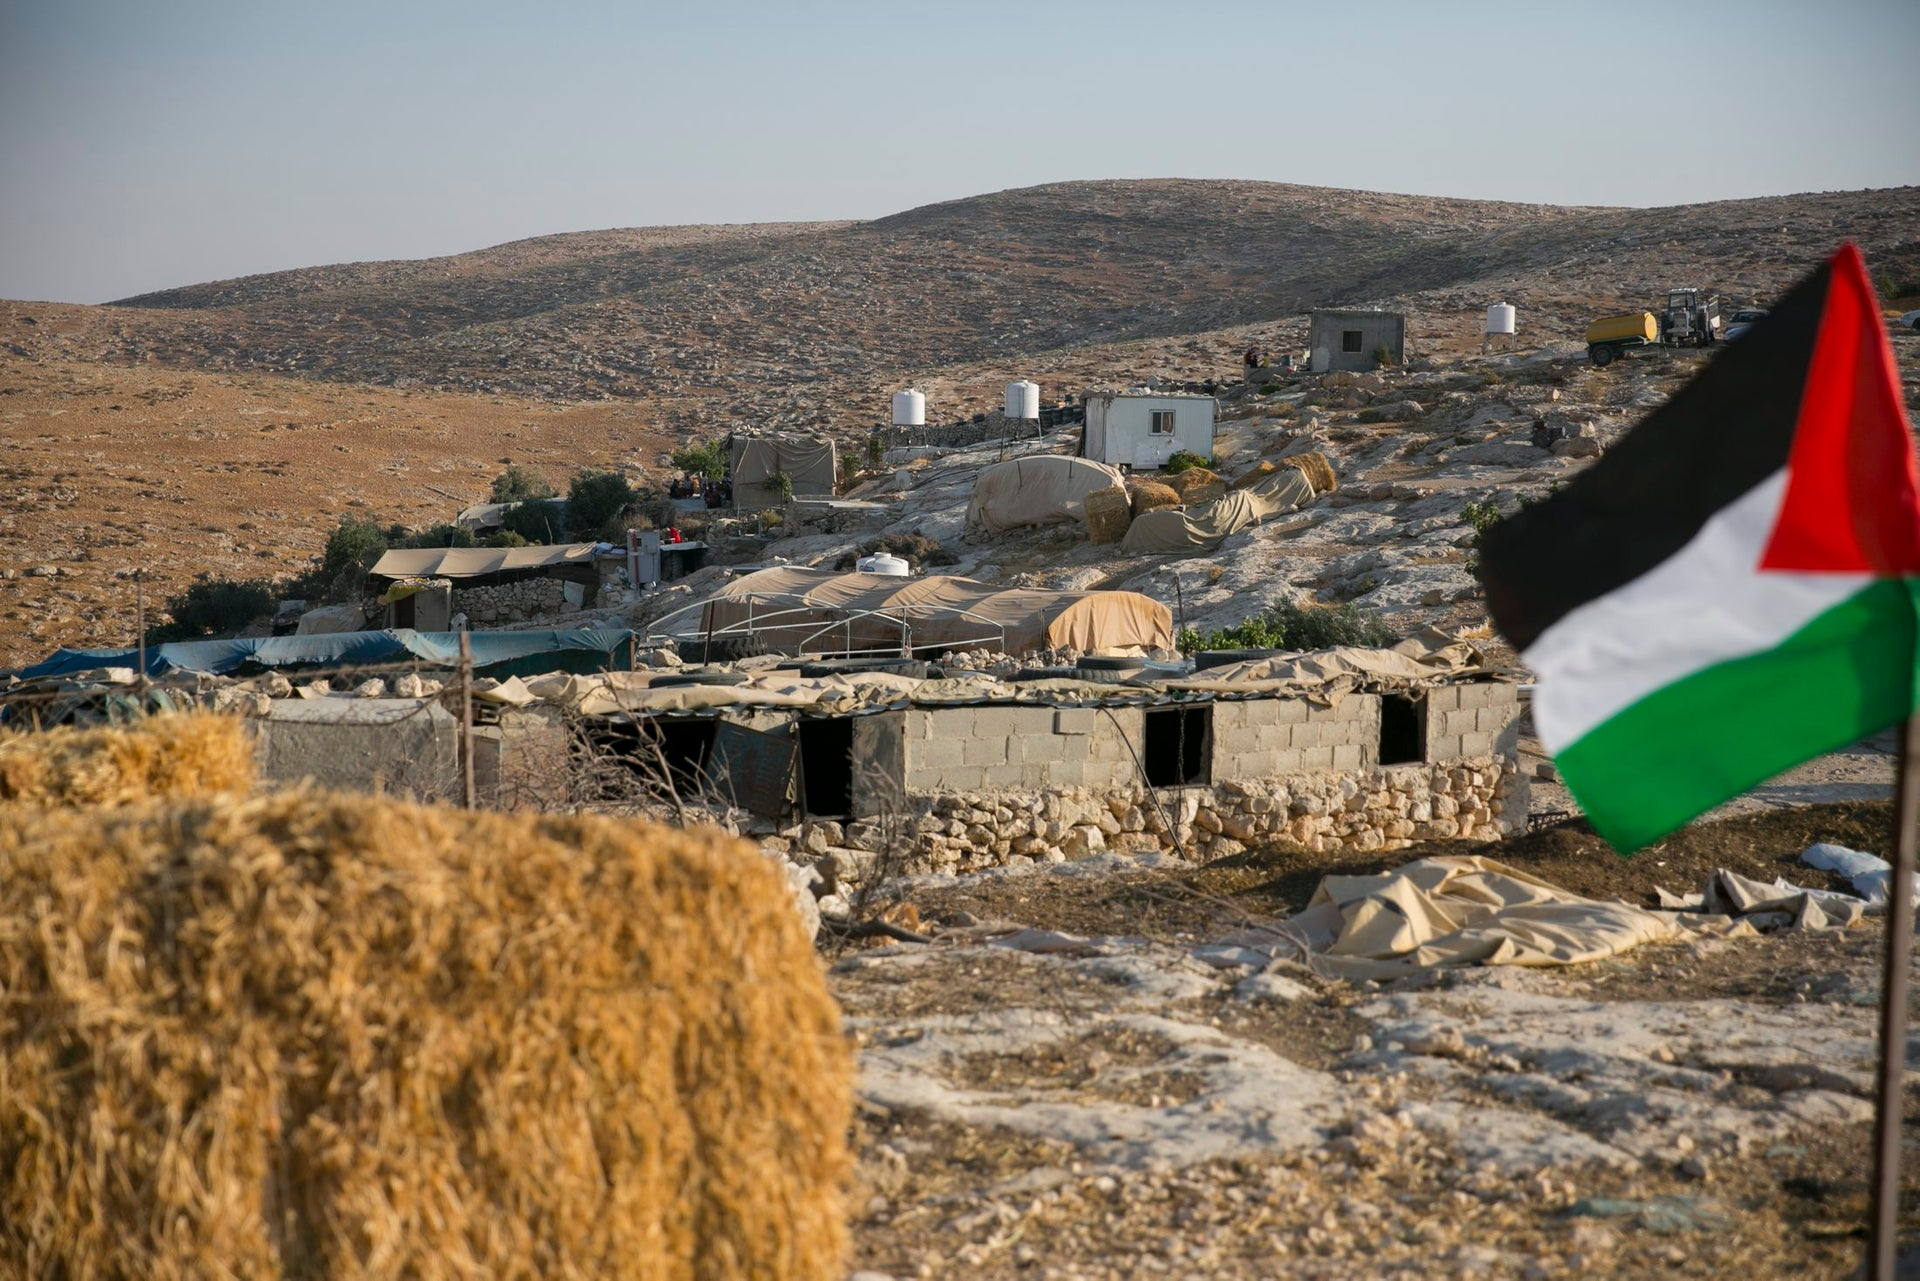 The neighboring village of Umm Faqara whose residents returned after the initial demolition.